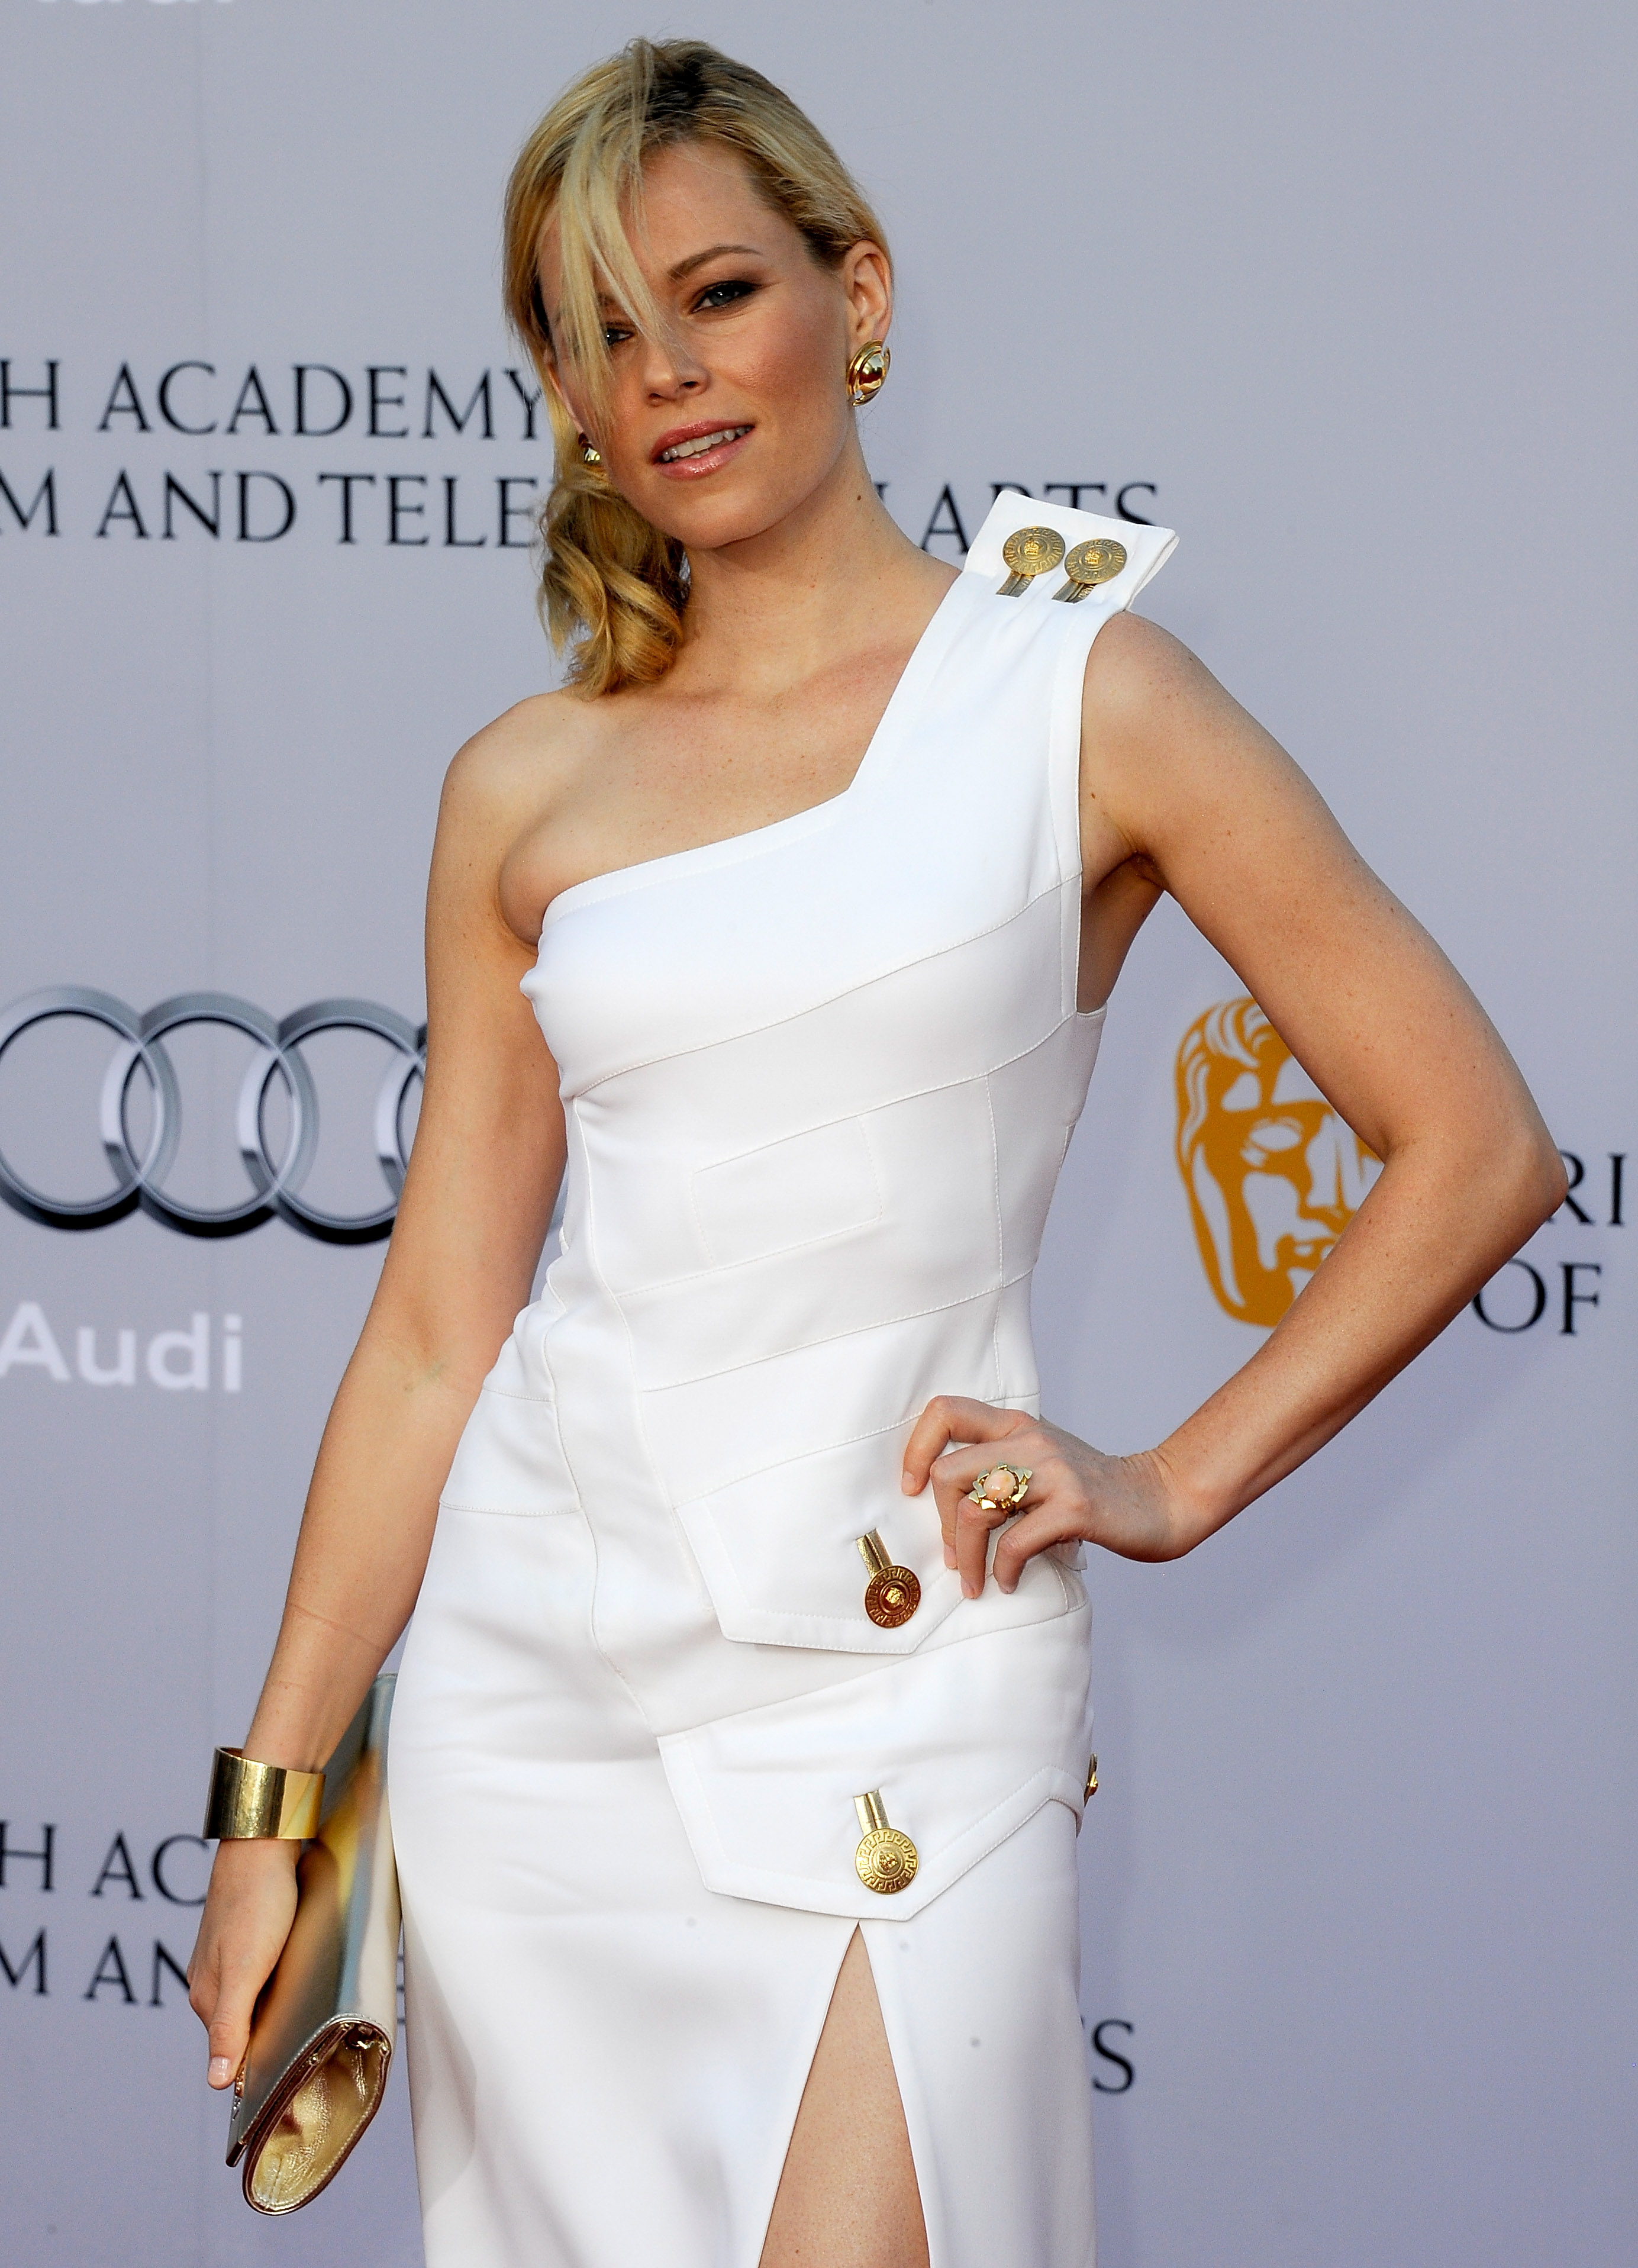 Elizabeth Banks at the BAFTA Brits to Watch event in LA.